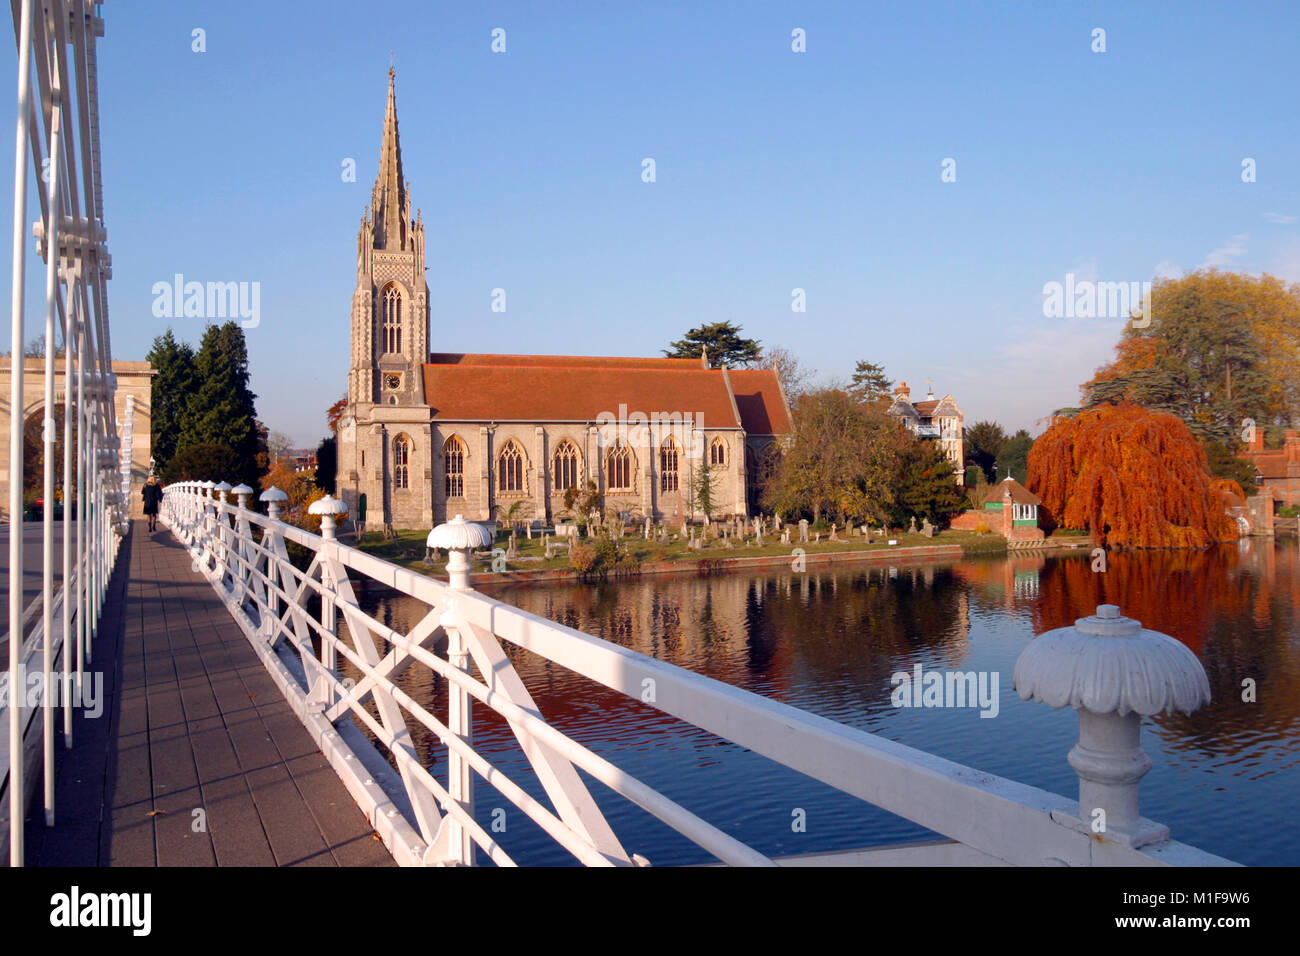 England, Chilterns, Buckinghamshire, the church and historic suspension bridge over the River Thames at Marlow - Stock Image